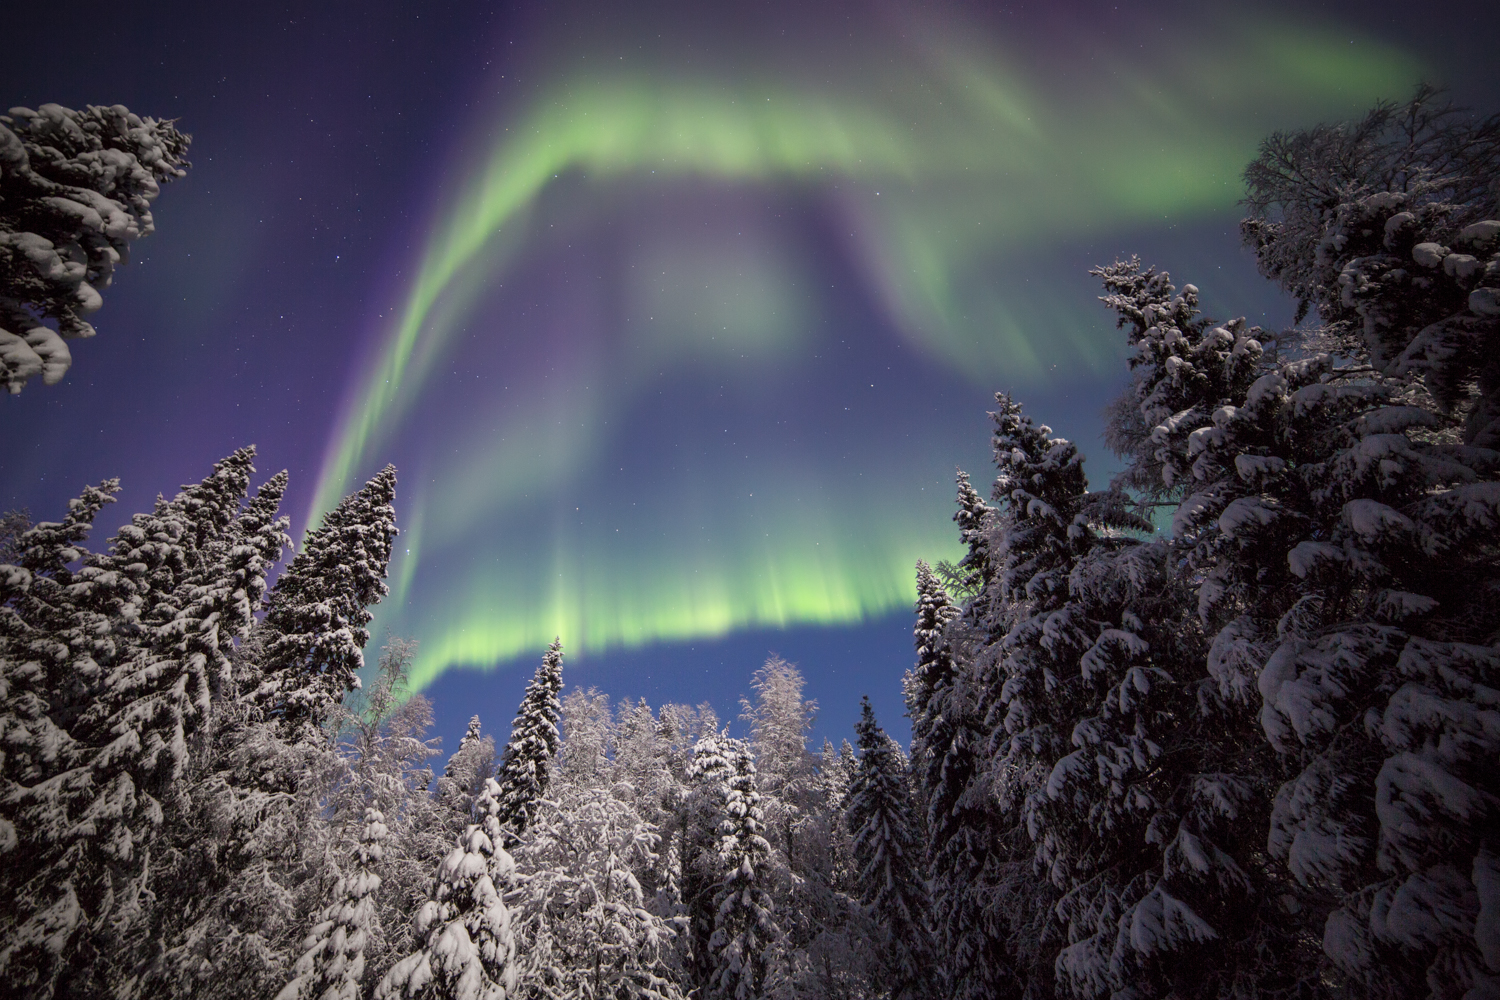 Auroras dancing above the trees in the Korouoma canyon.